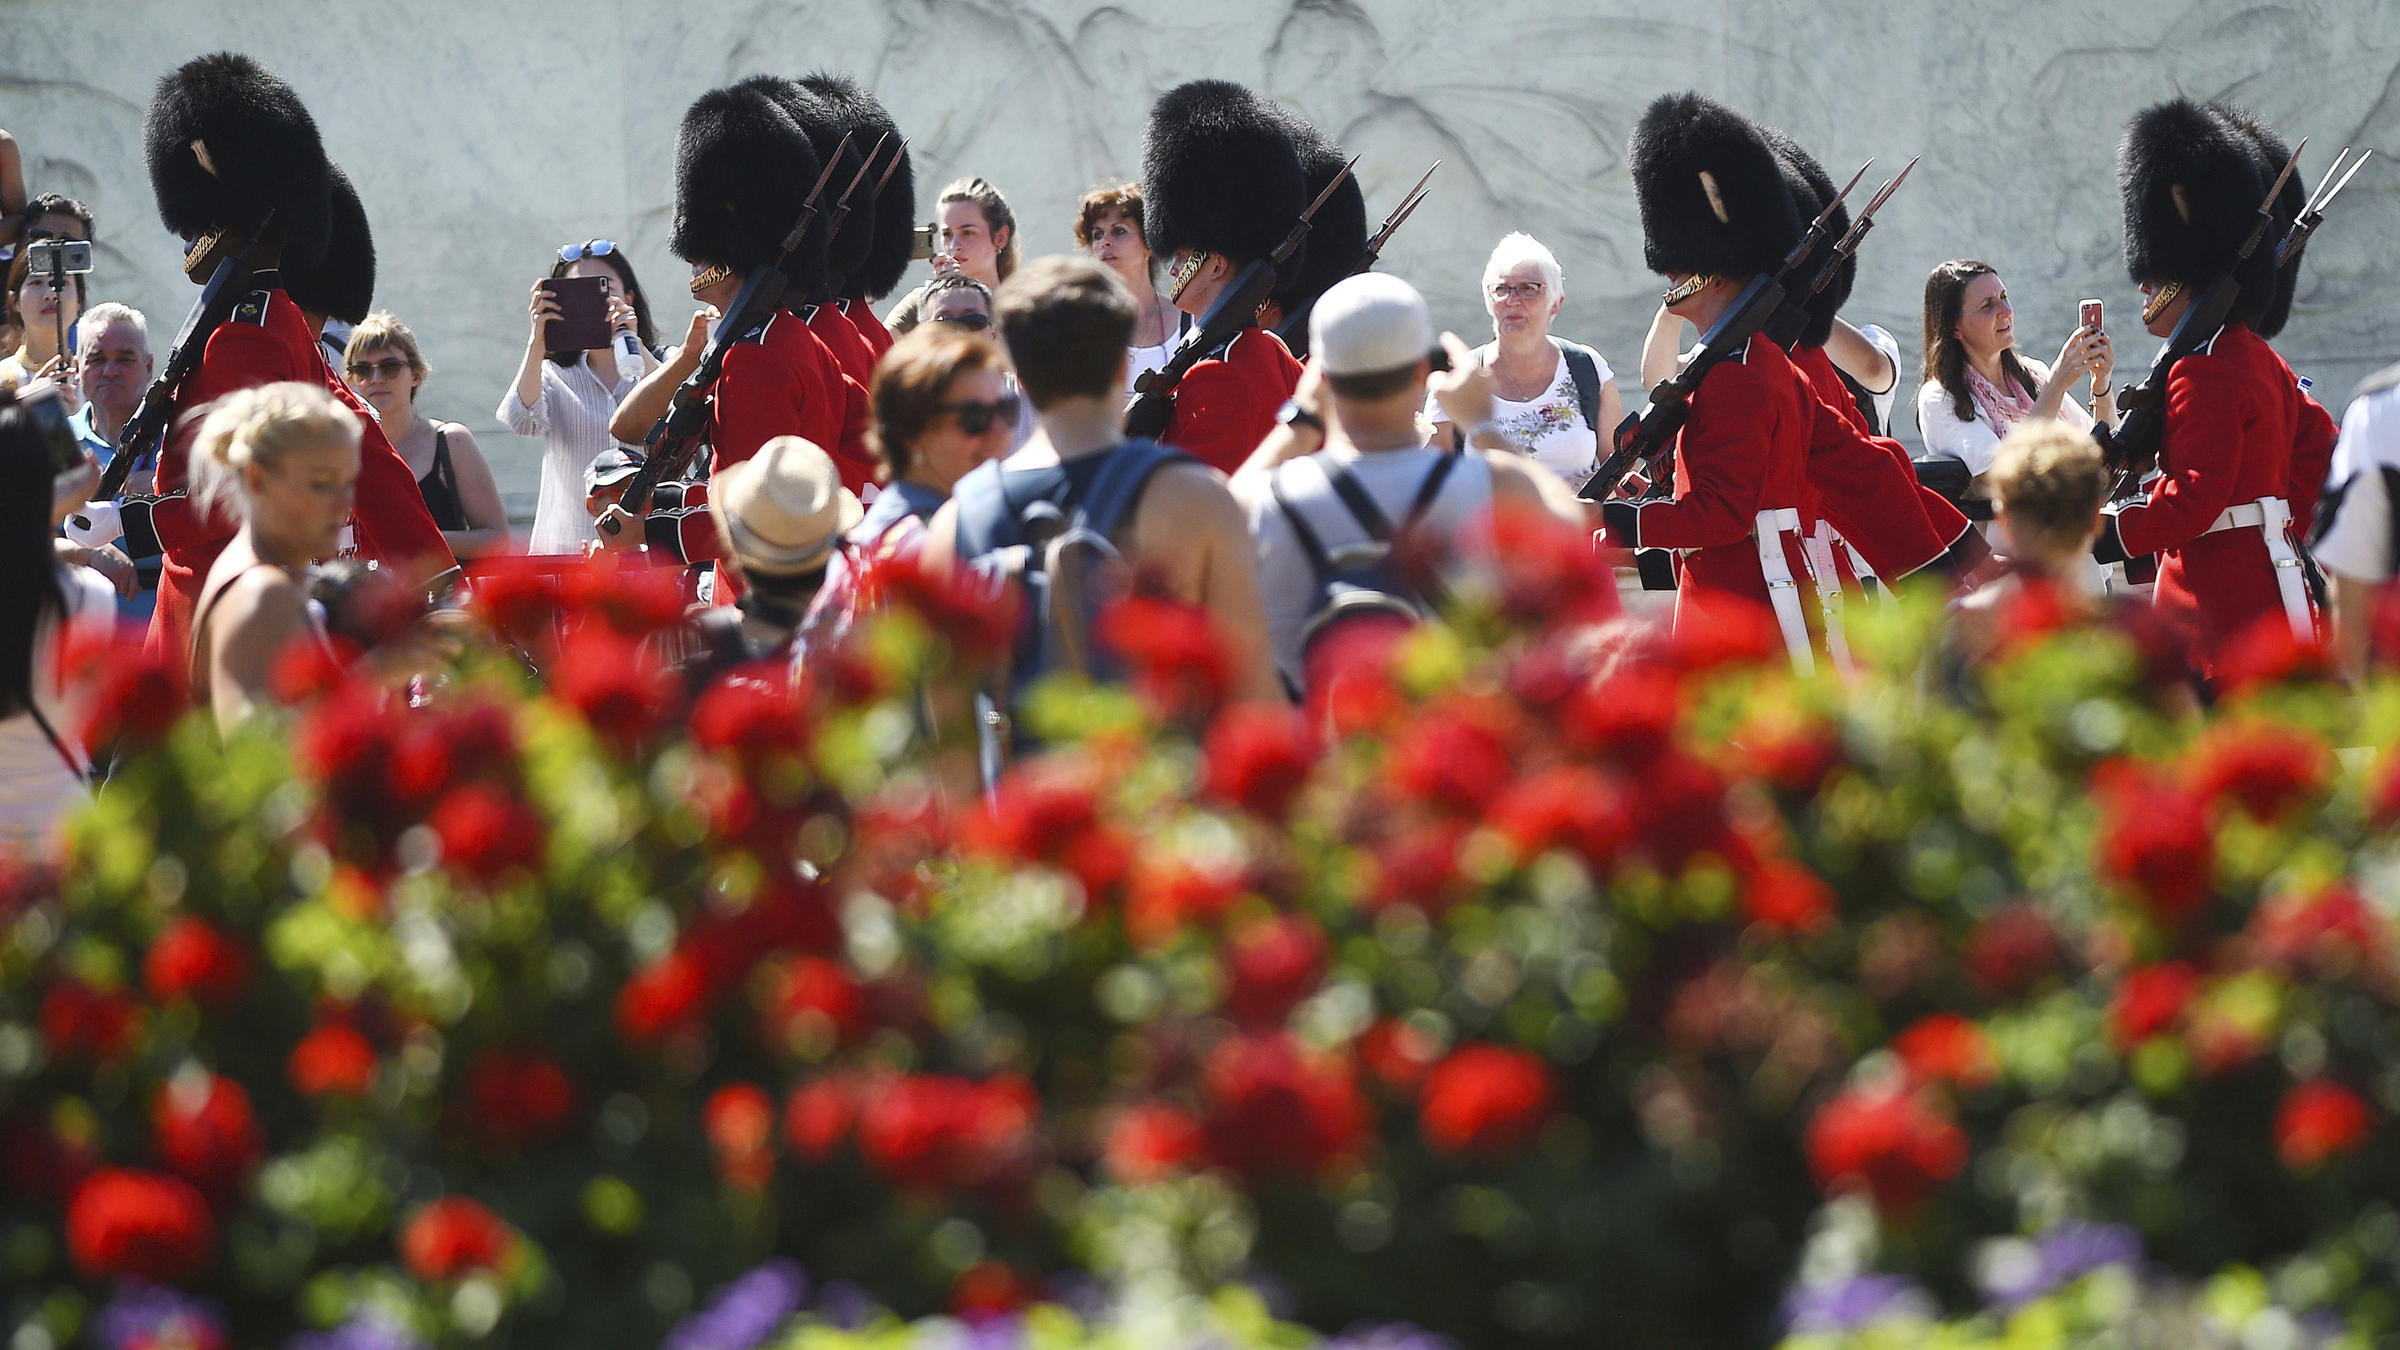 To mark an american queens funeral buckingham palace plays spectators gather daily to watch the changing of the guard at buckingham palace in london on friday a military band paid tribute to aretha franklin at the izmirmasajfo